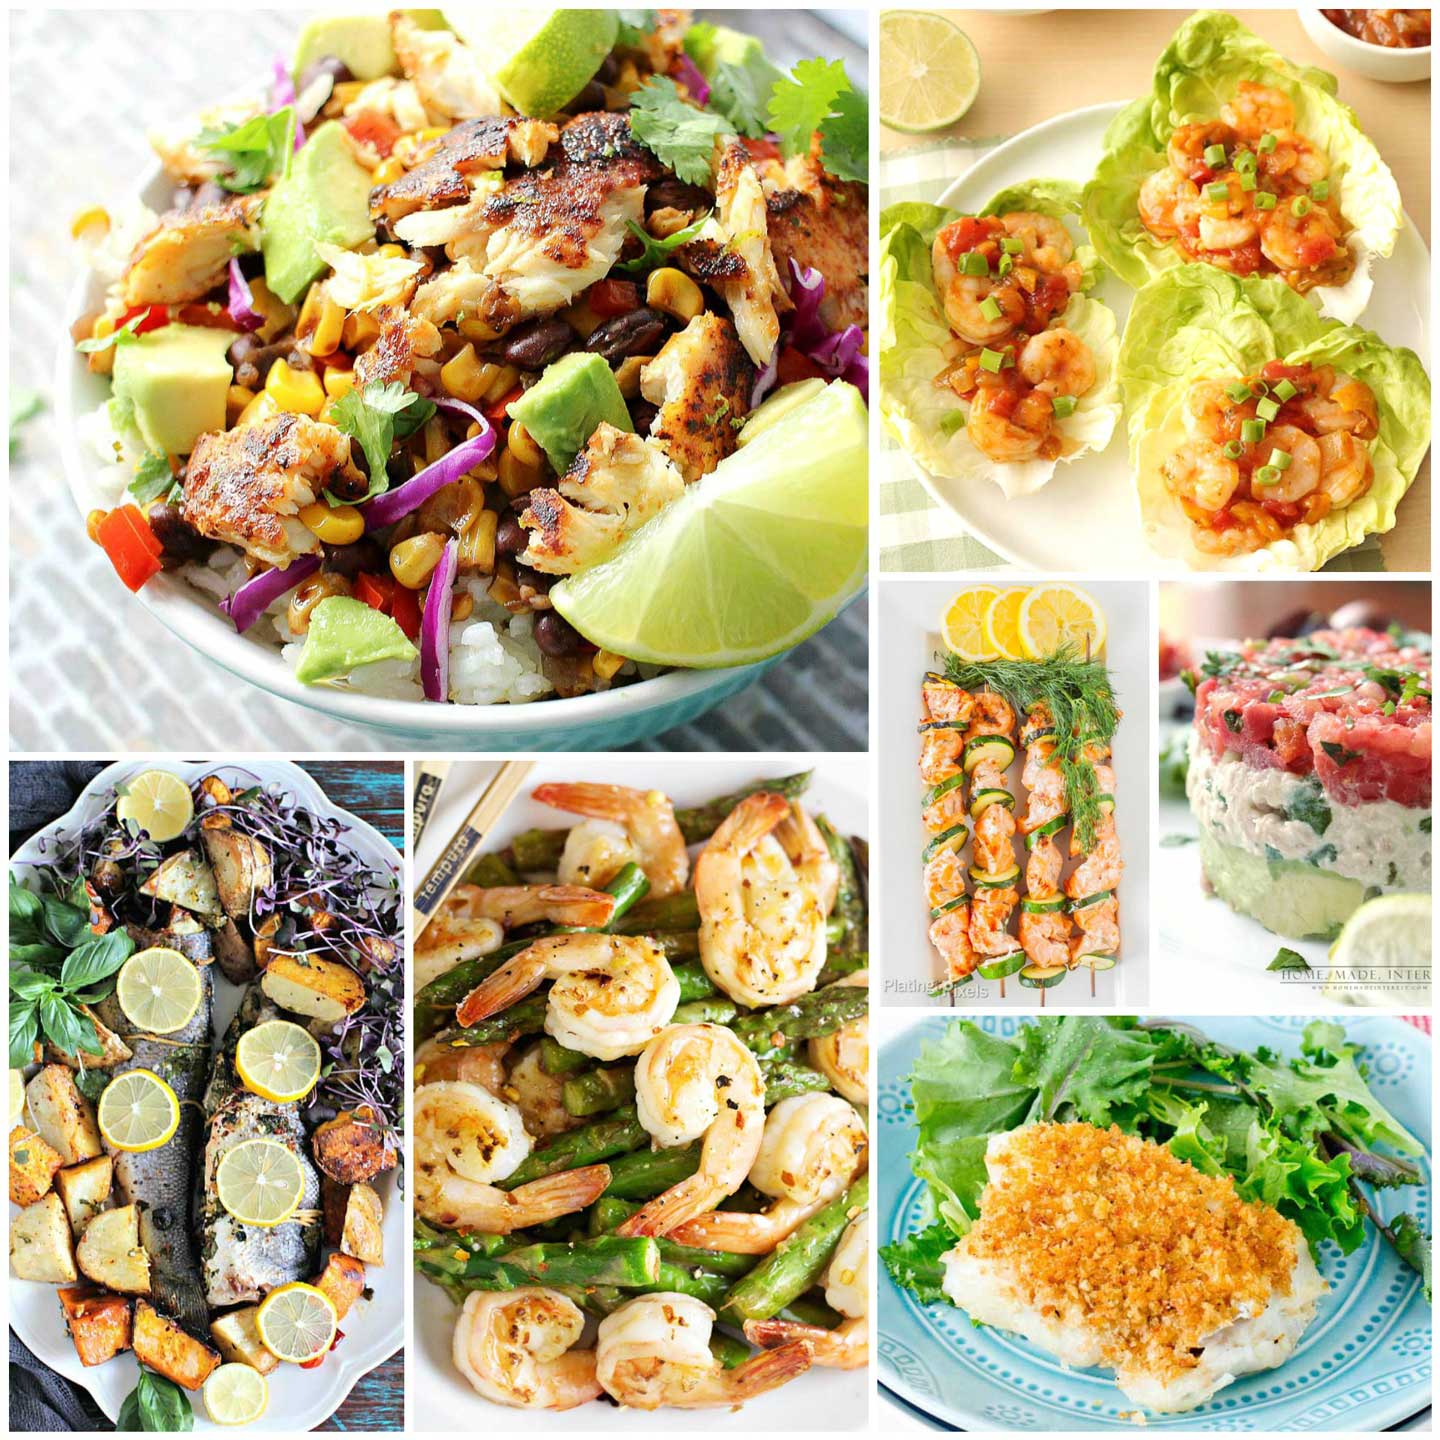 9 All Time Best Healthy Easy Seafood And Fish Recipes Two Healthy